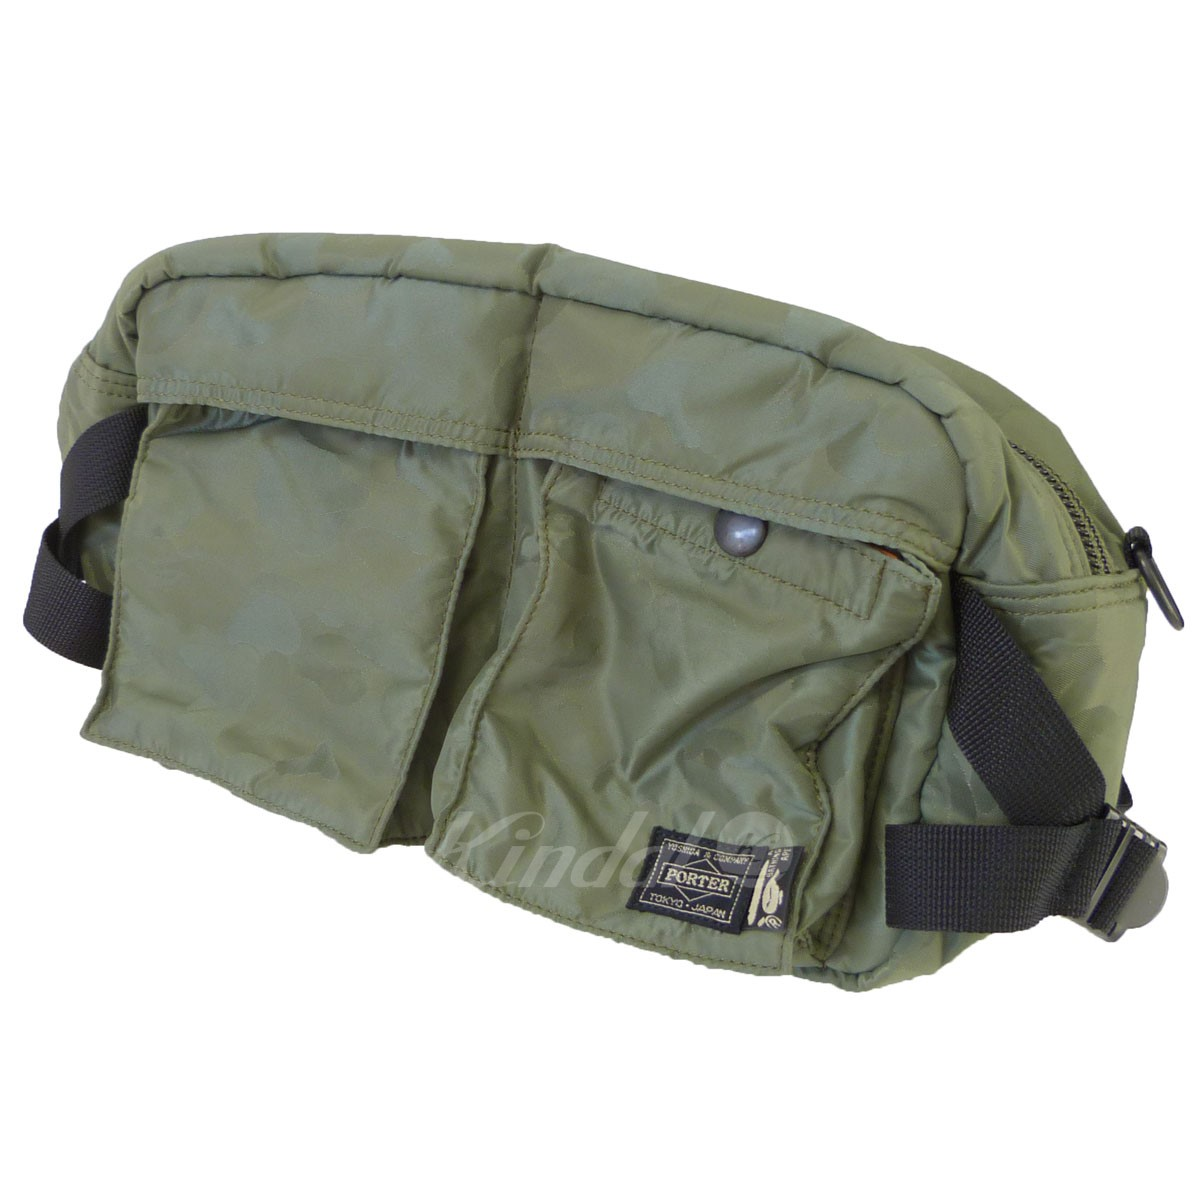 【中古】A BATHING APE×PORTER 「JACQUARD ABC WAIST BAG」ジャガードウエストバッグ 【送料無料】 【126381】 【KIND1551】